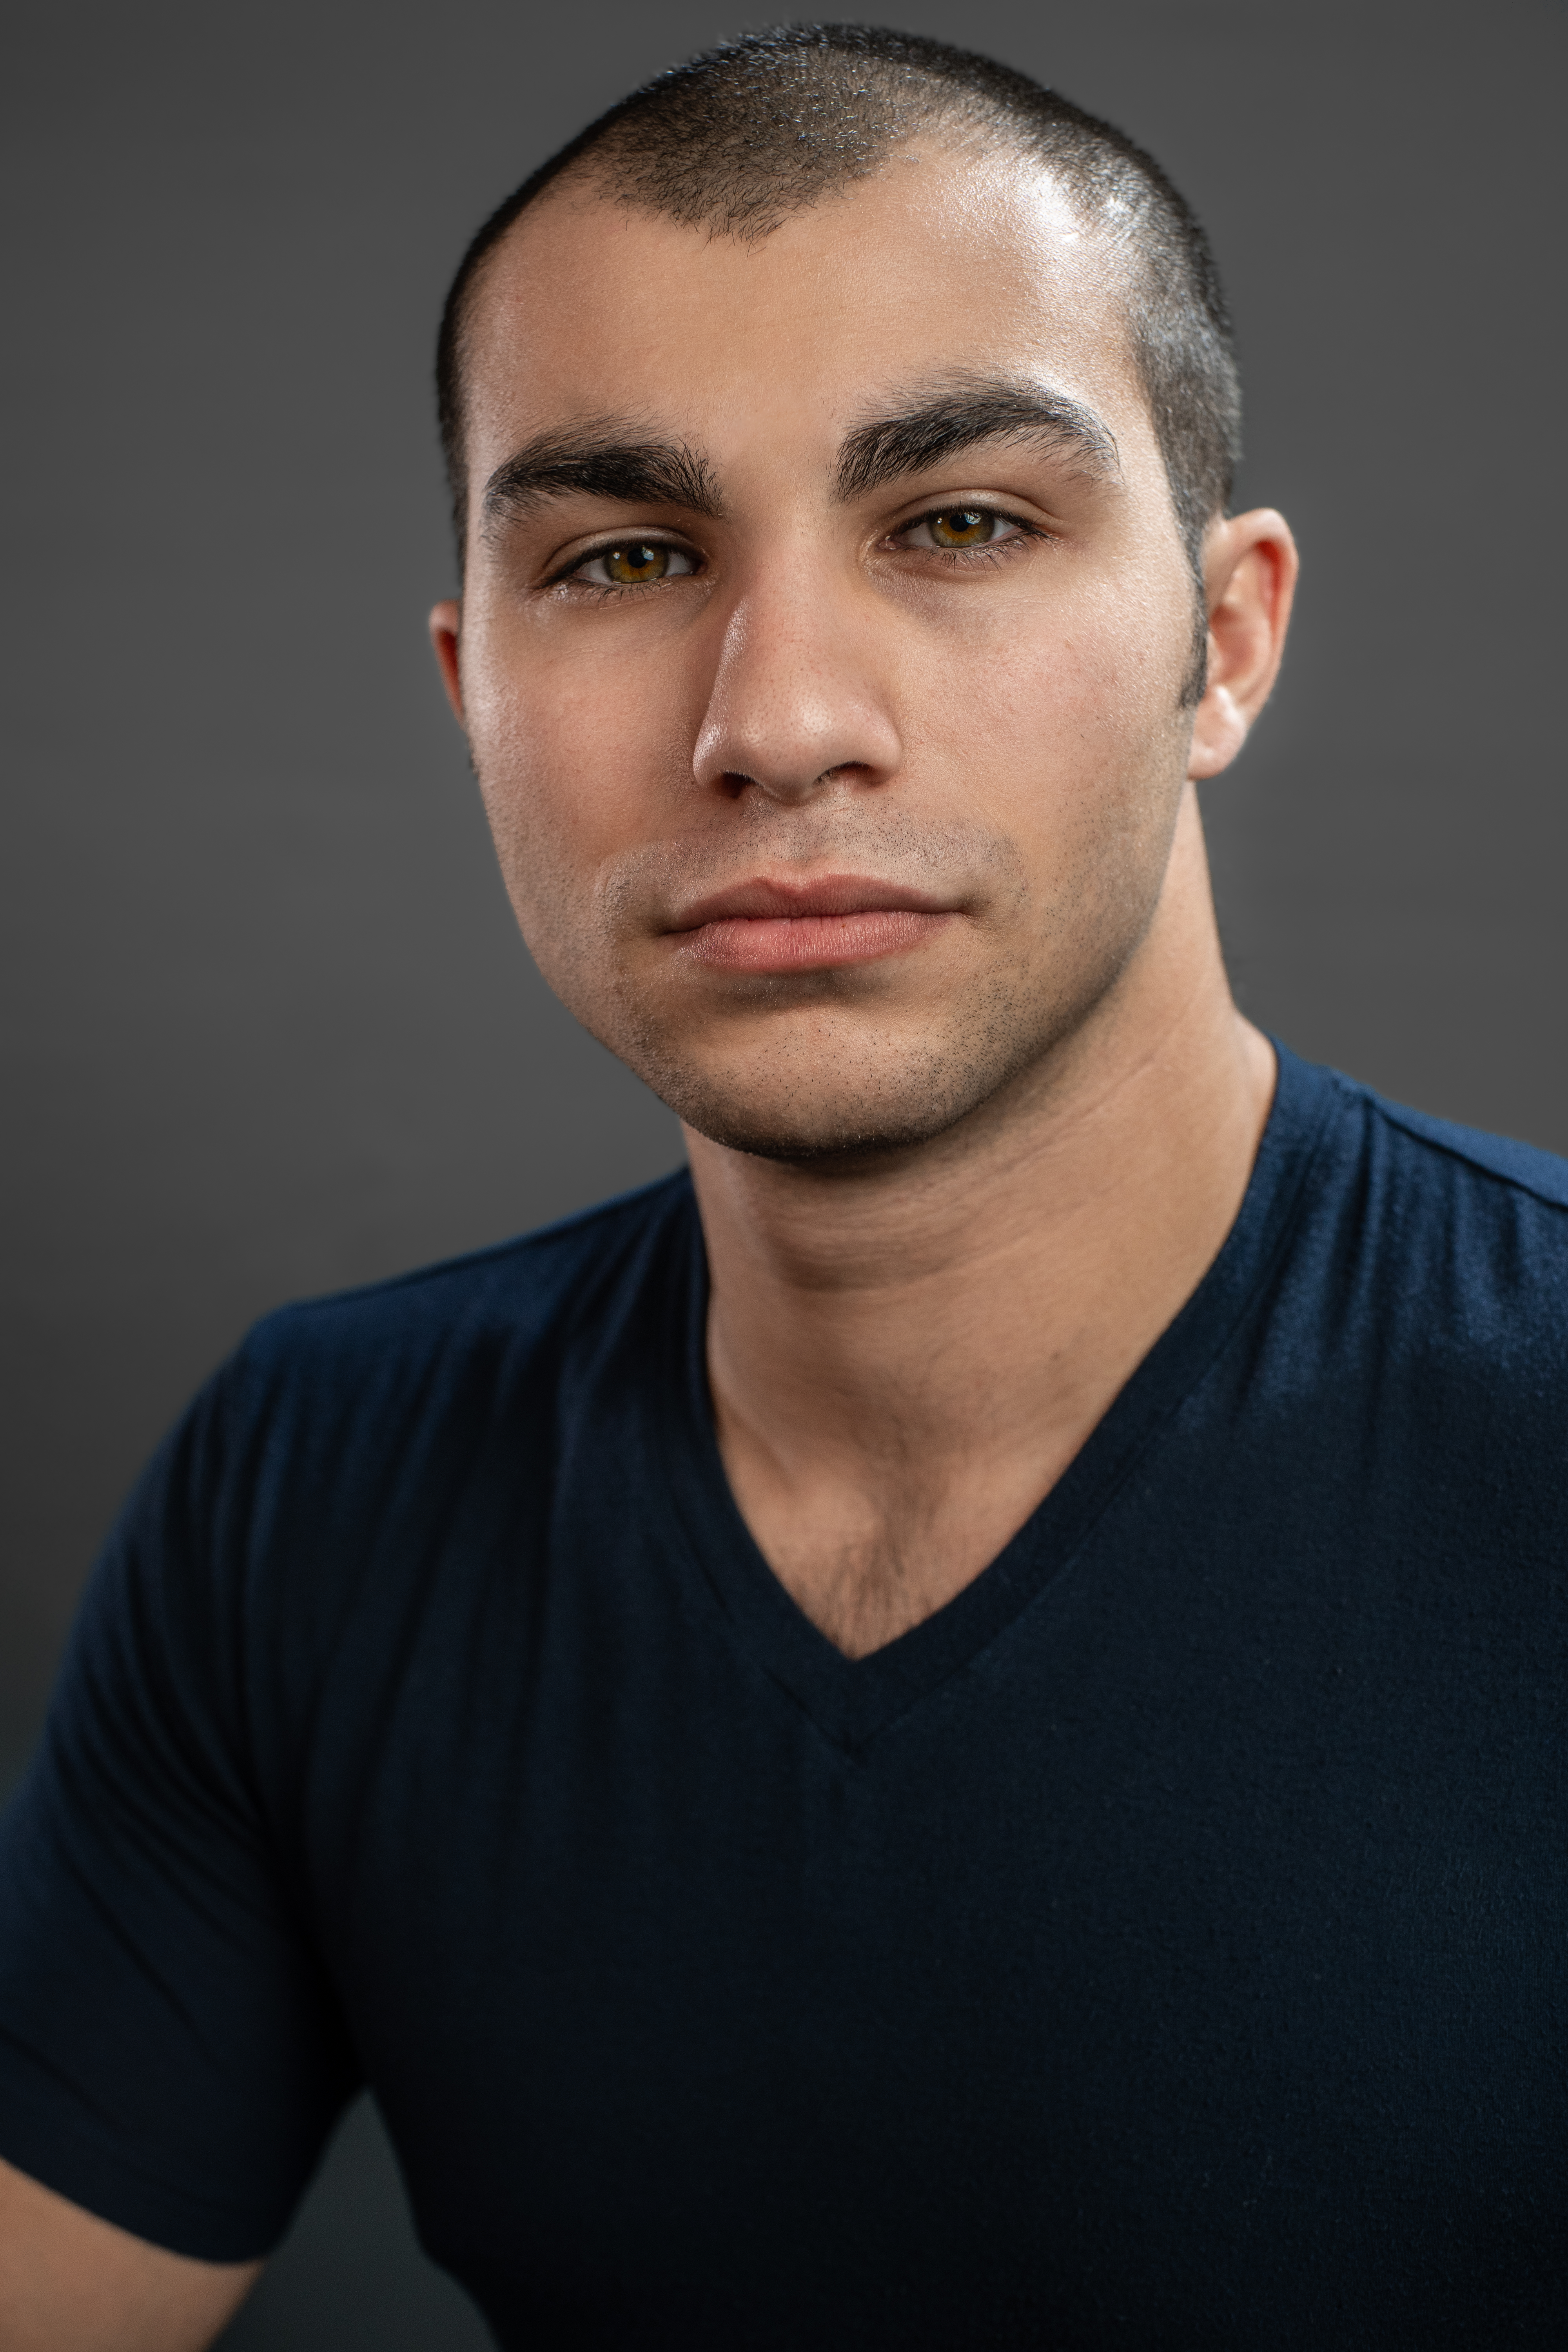 Jacksonville Headshot Photography